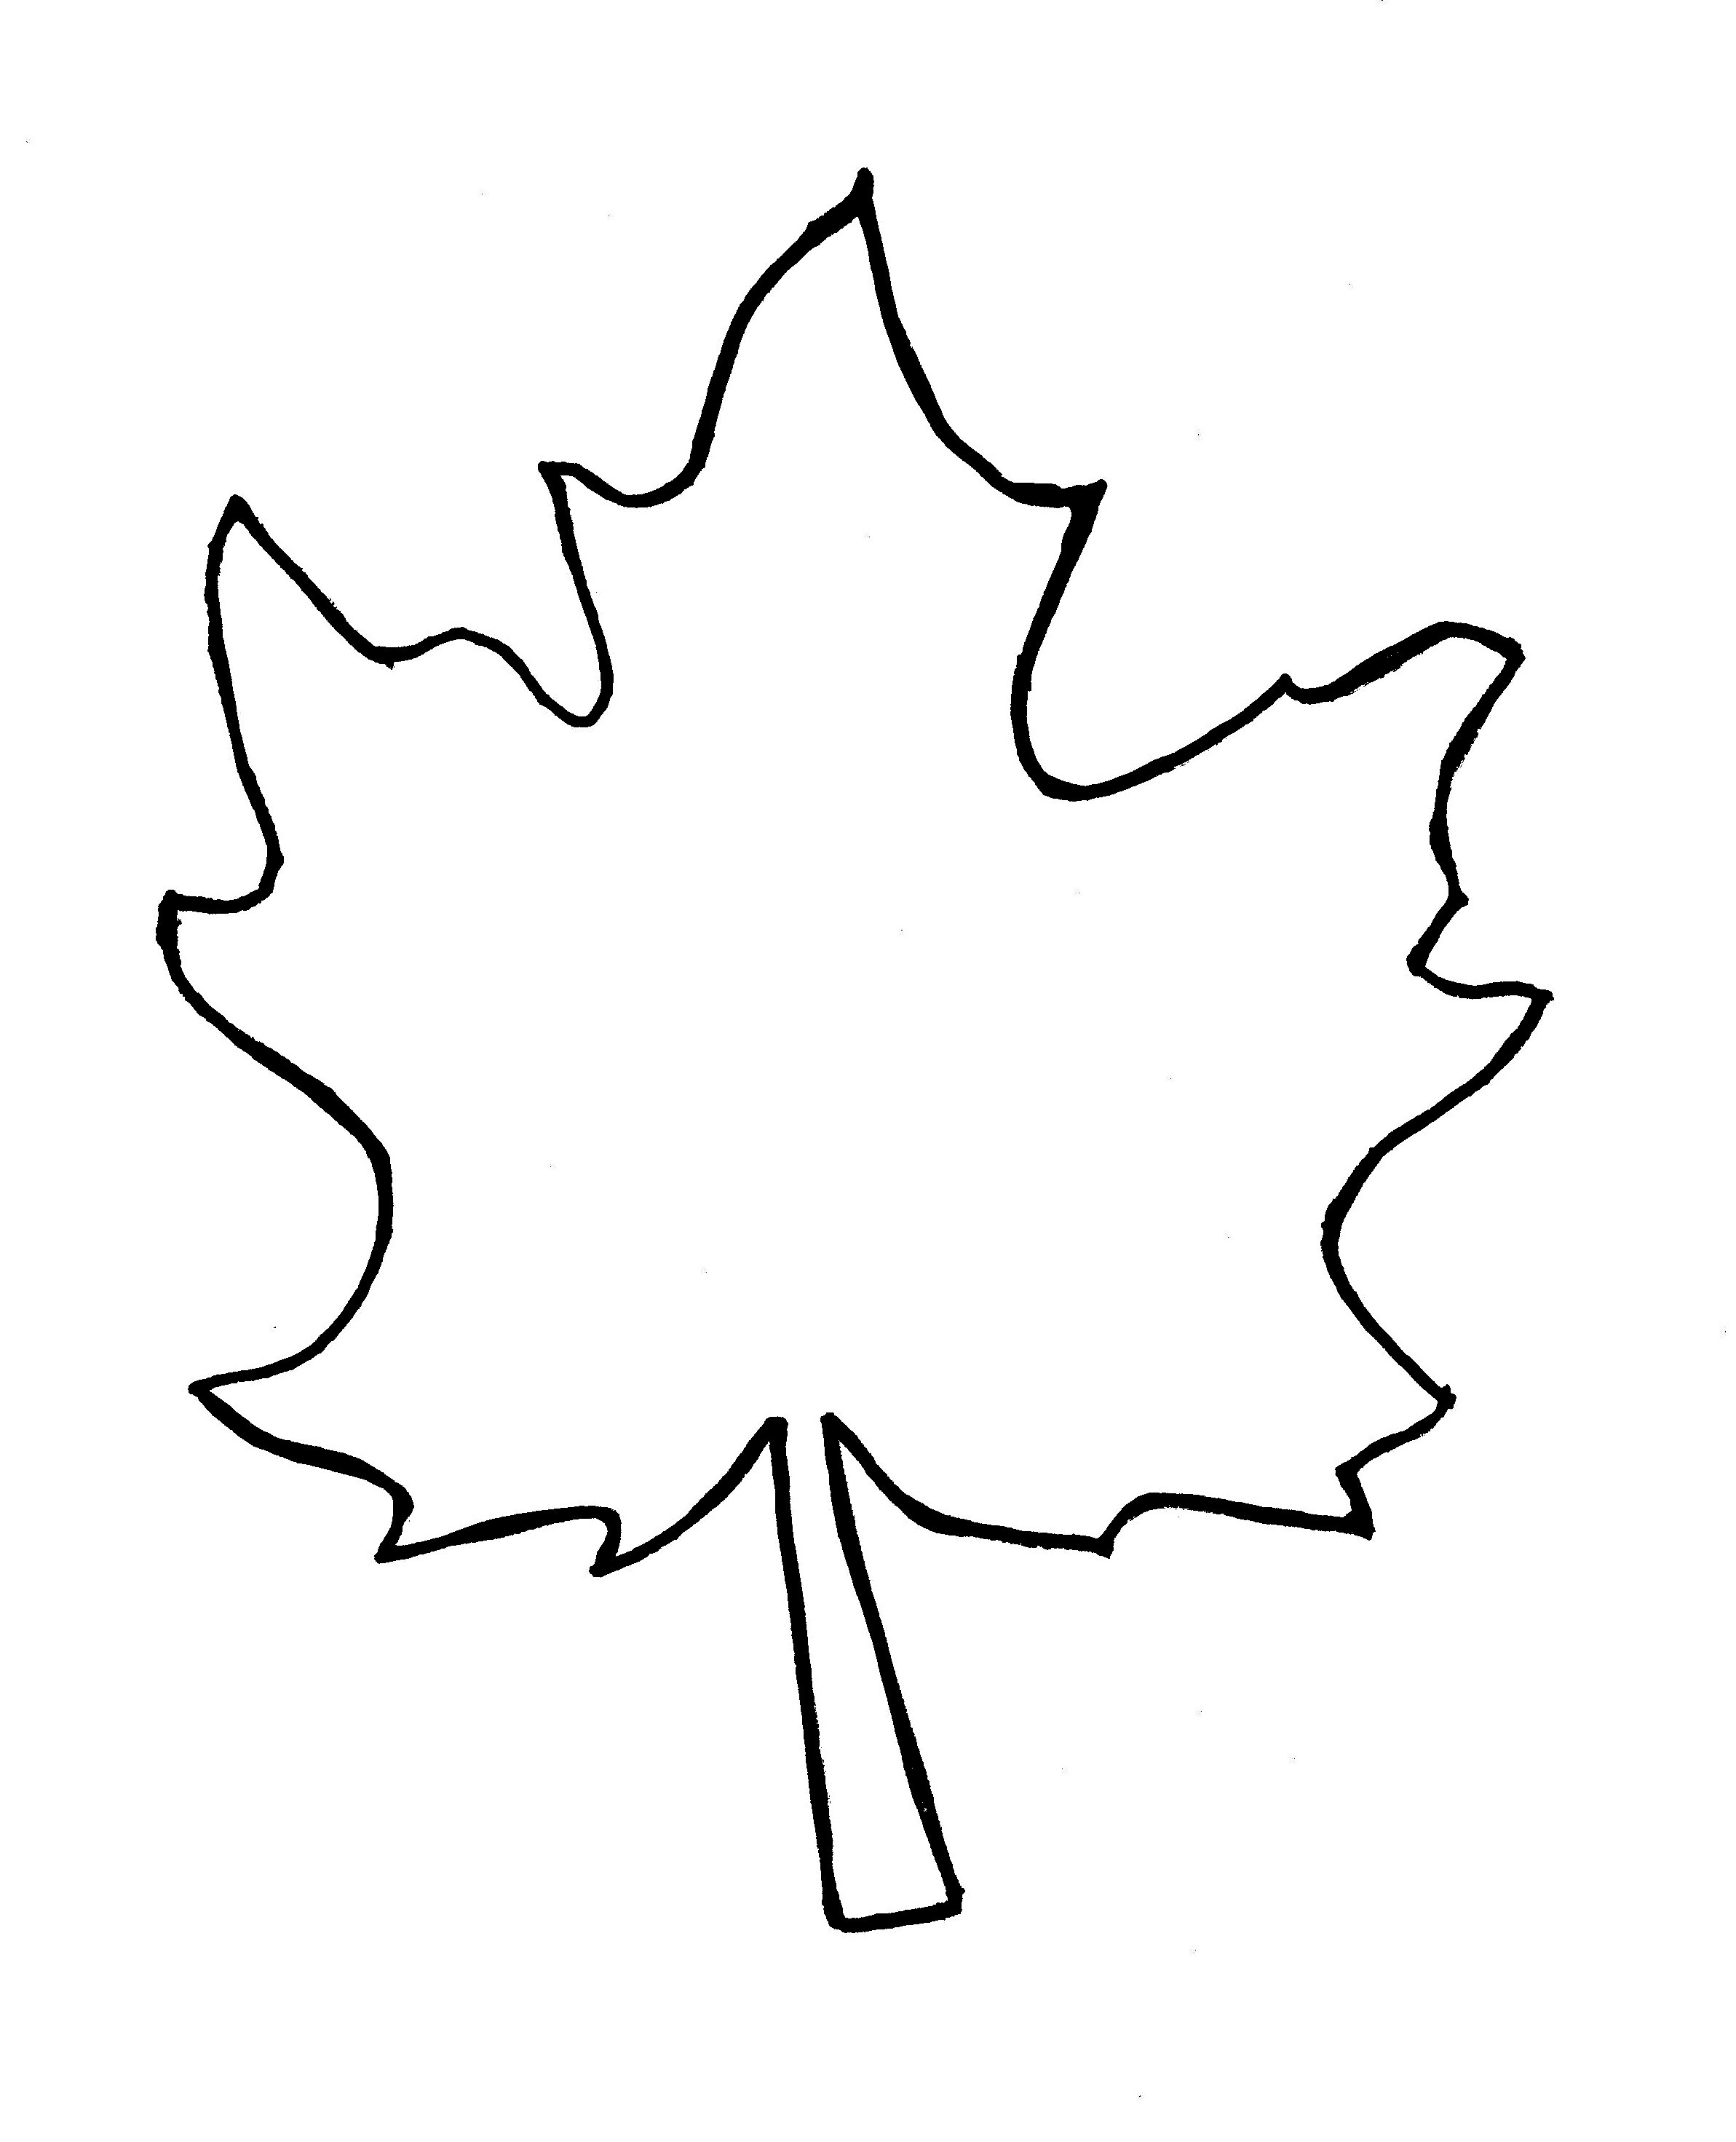 Leaf patterns clipart clipart library download Leaf Print Out Template. best photos of fall leaf print out fall ... clipart library download